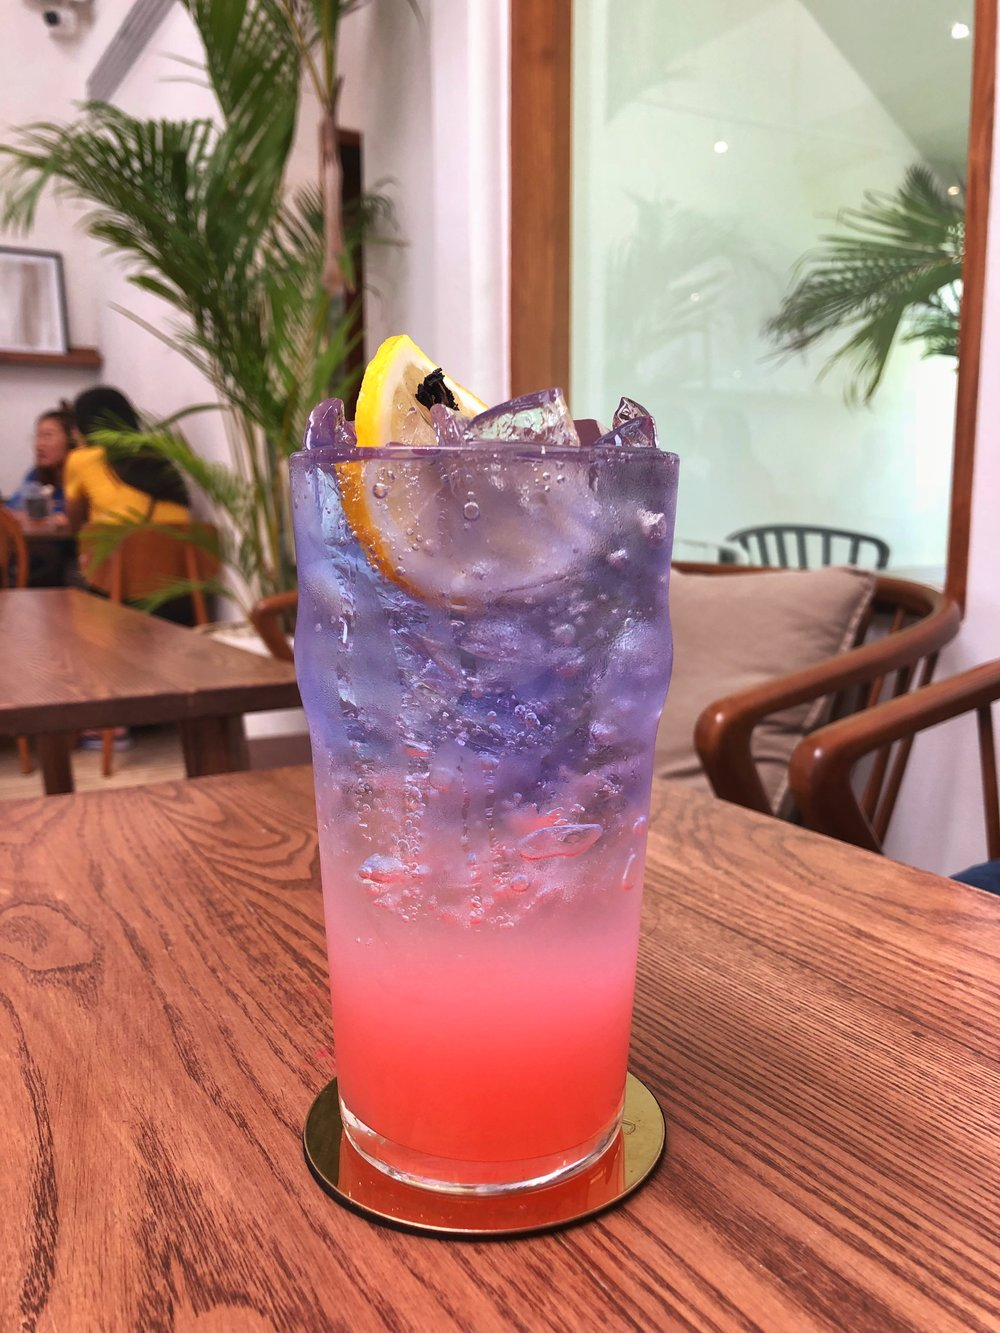 busaba cafe & meal ayutthaya butterfly pea lychee peach soda